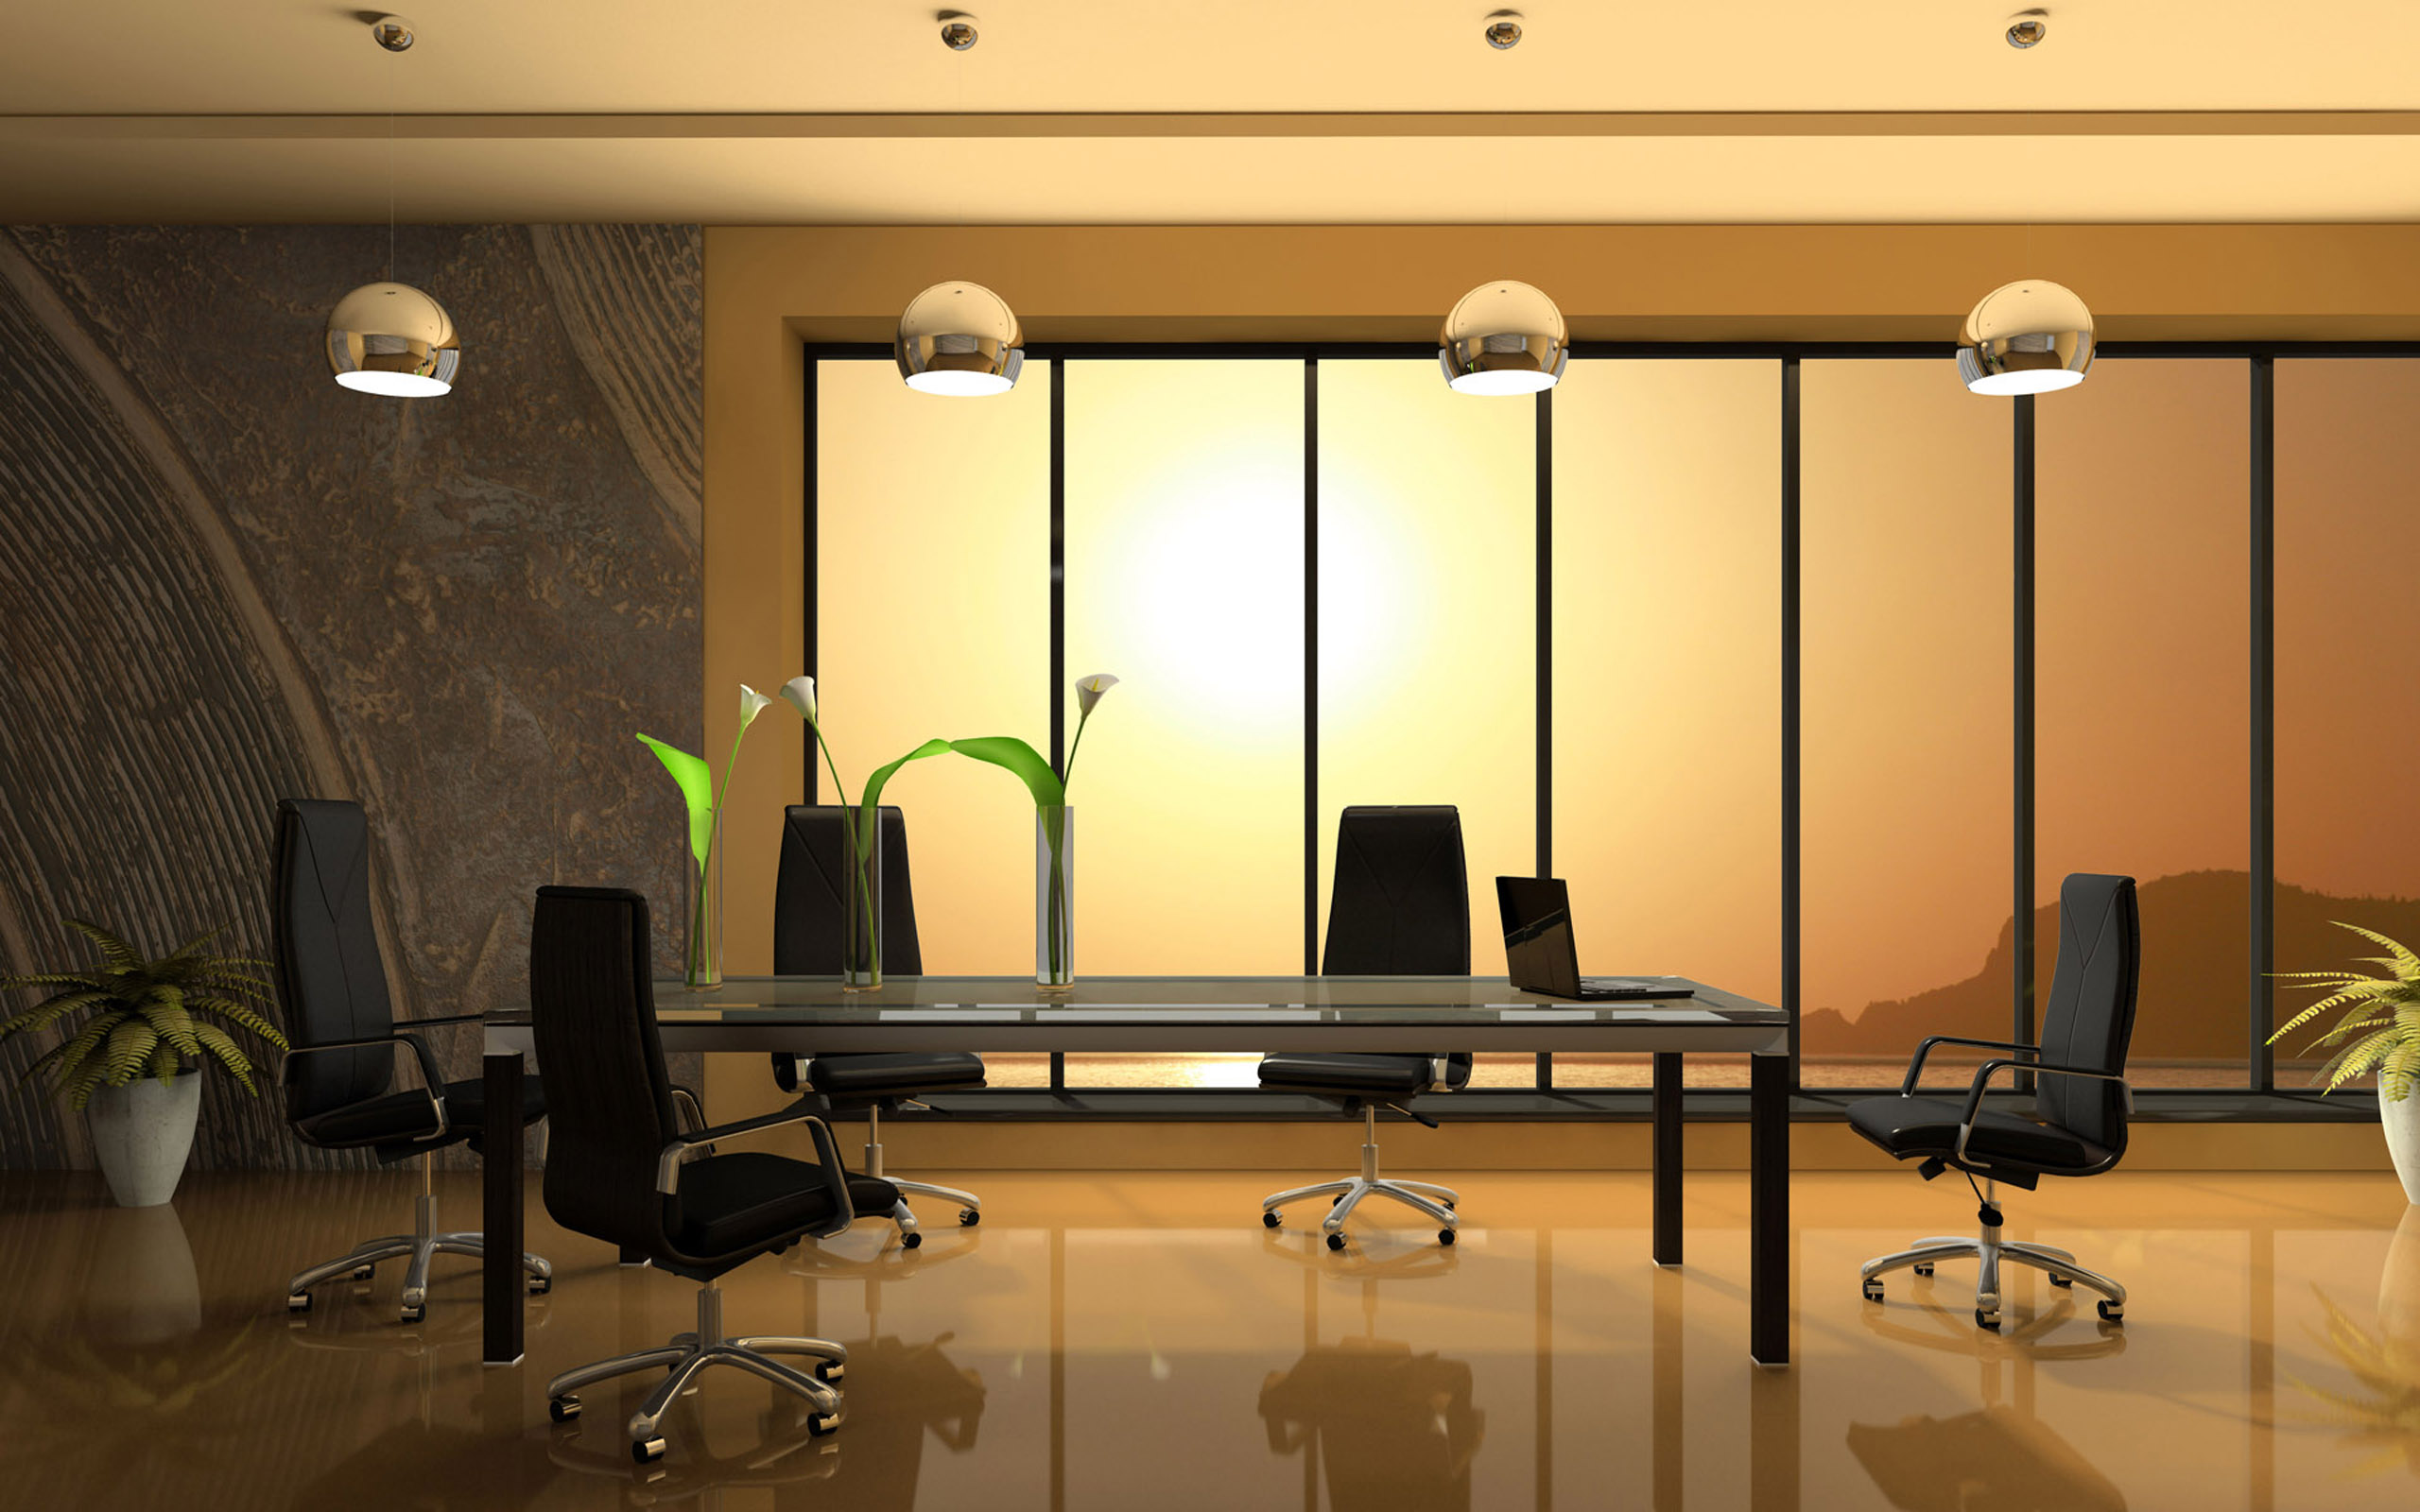 office wall papers. wallpaper office wall papers